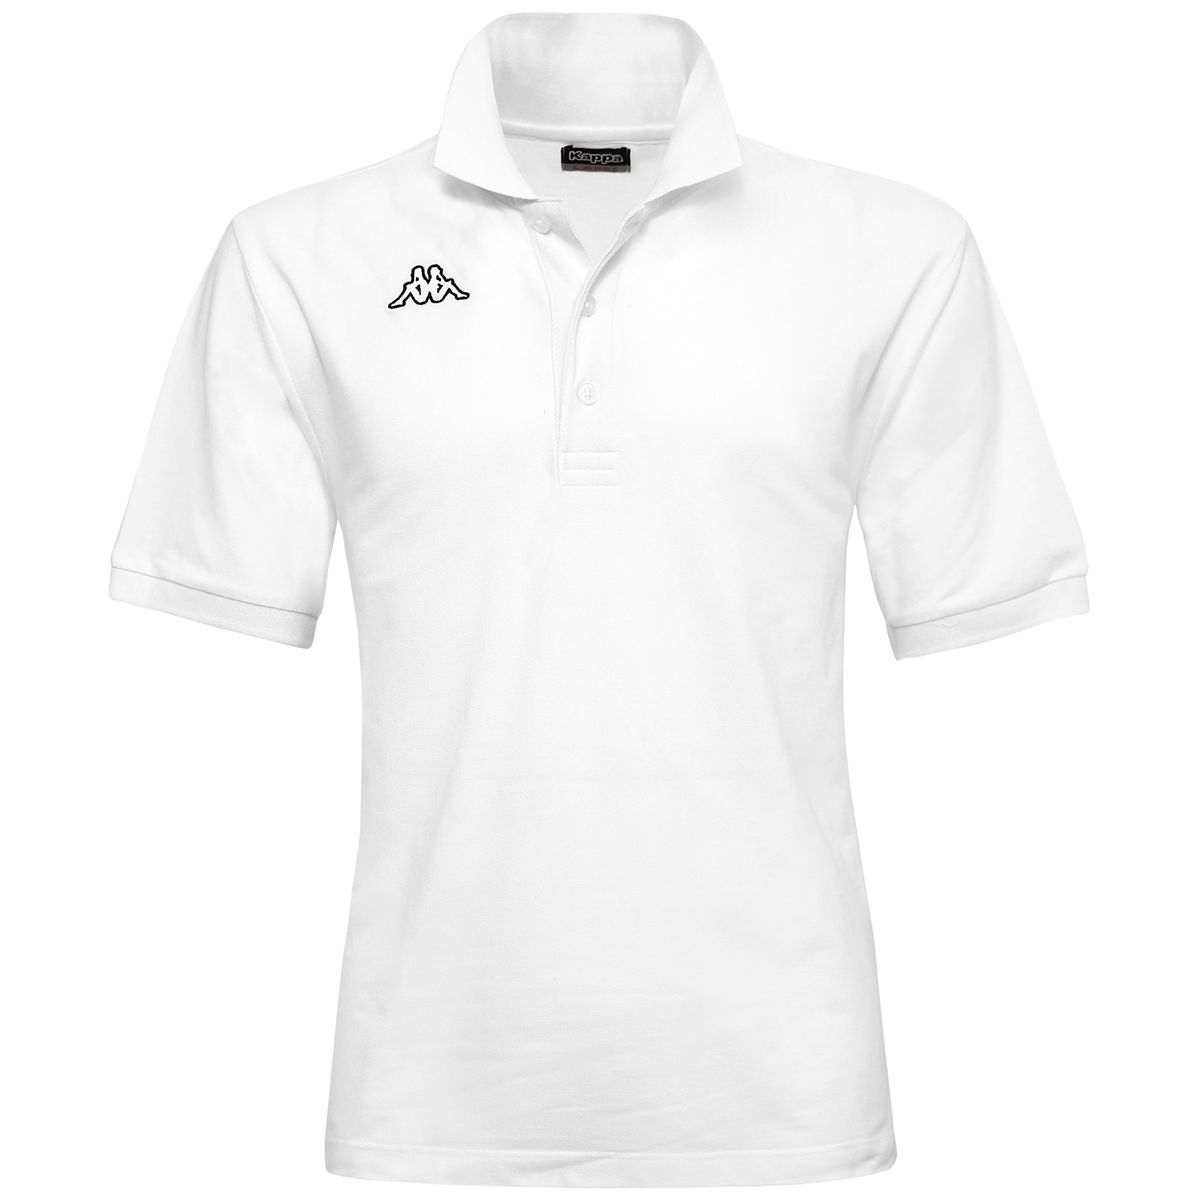 Kappa POLO SHIRTS Man LOGO SHARAS MSS Tennis sport Polo